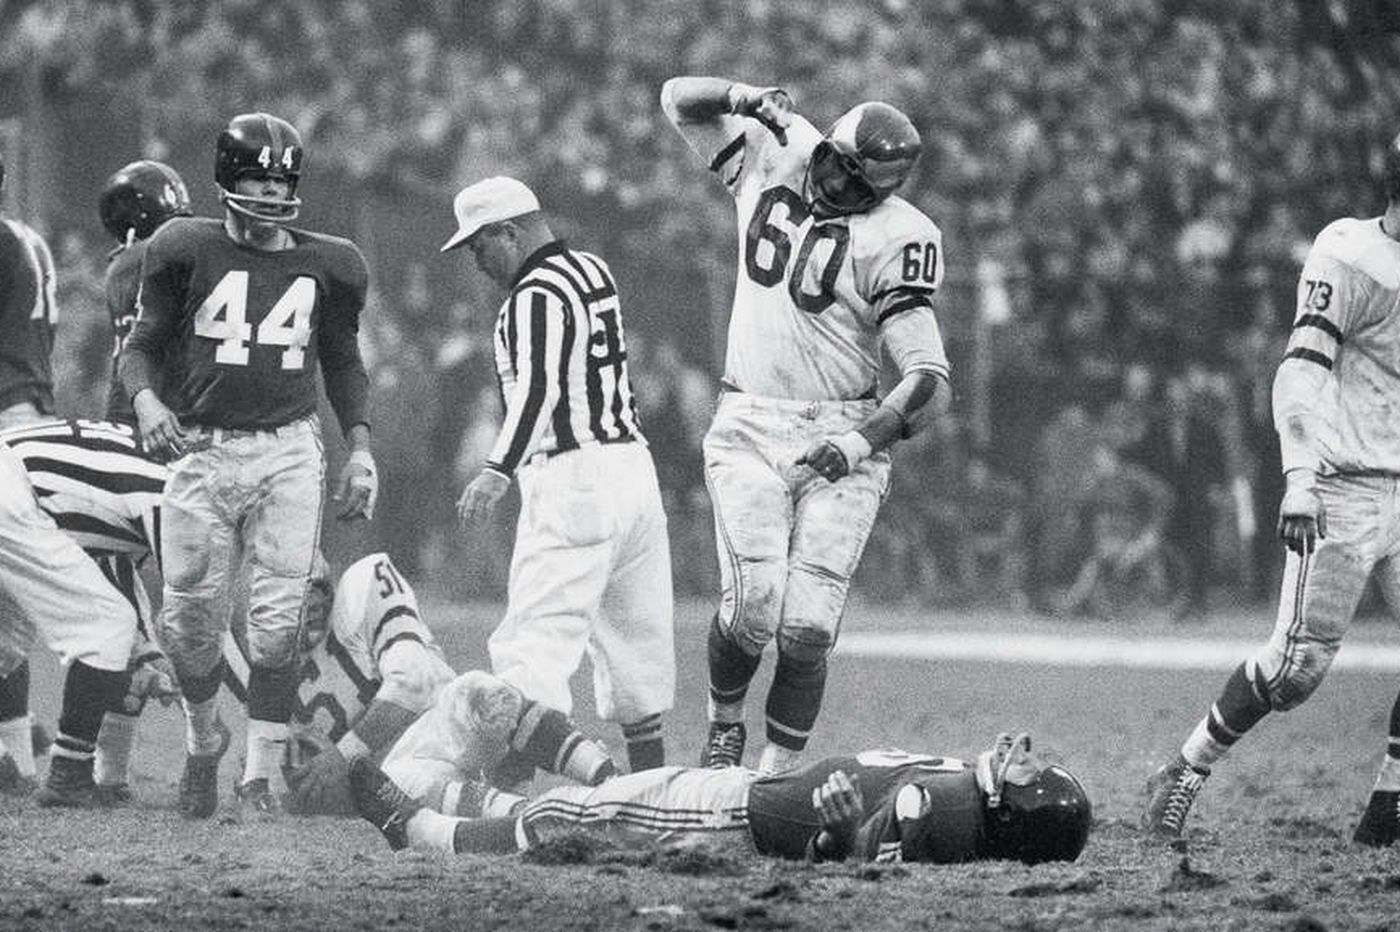 Chuck Bednarik, Frank Gifford, and the collision that still reverberates, 60 years later | Mike Sielski